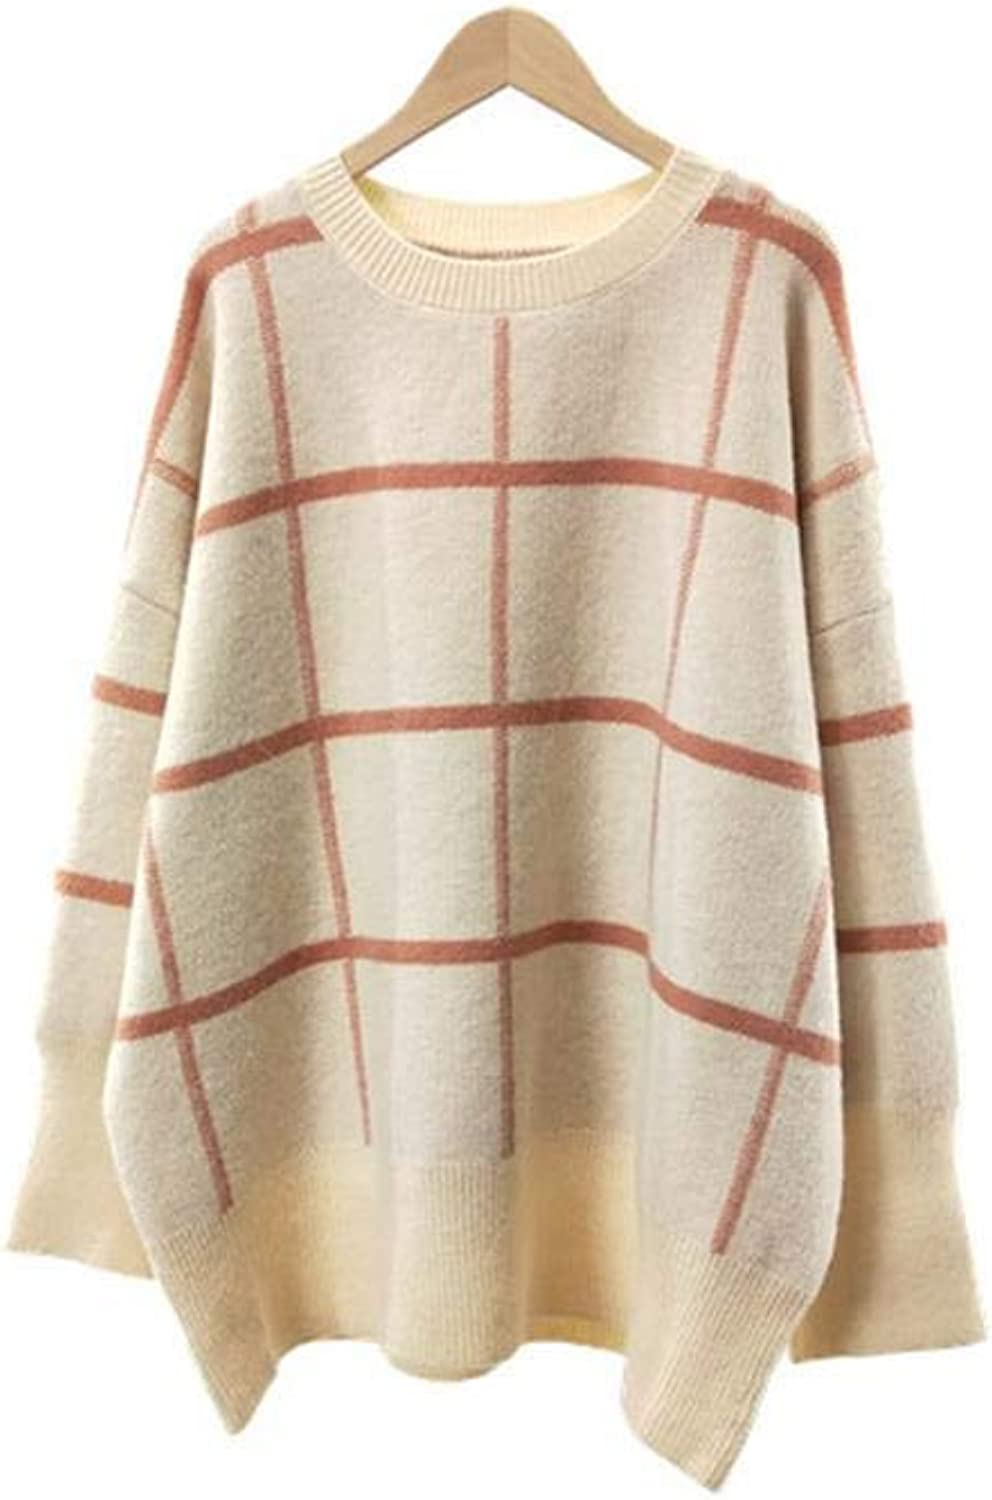 Roohb Autumn Winter Women's Knit Loose Plaid Soft Sweater